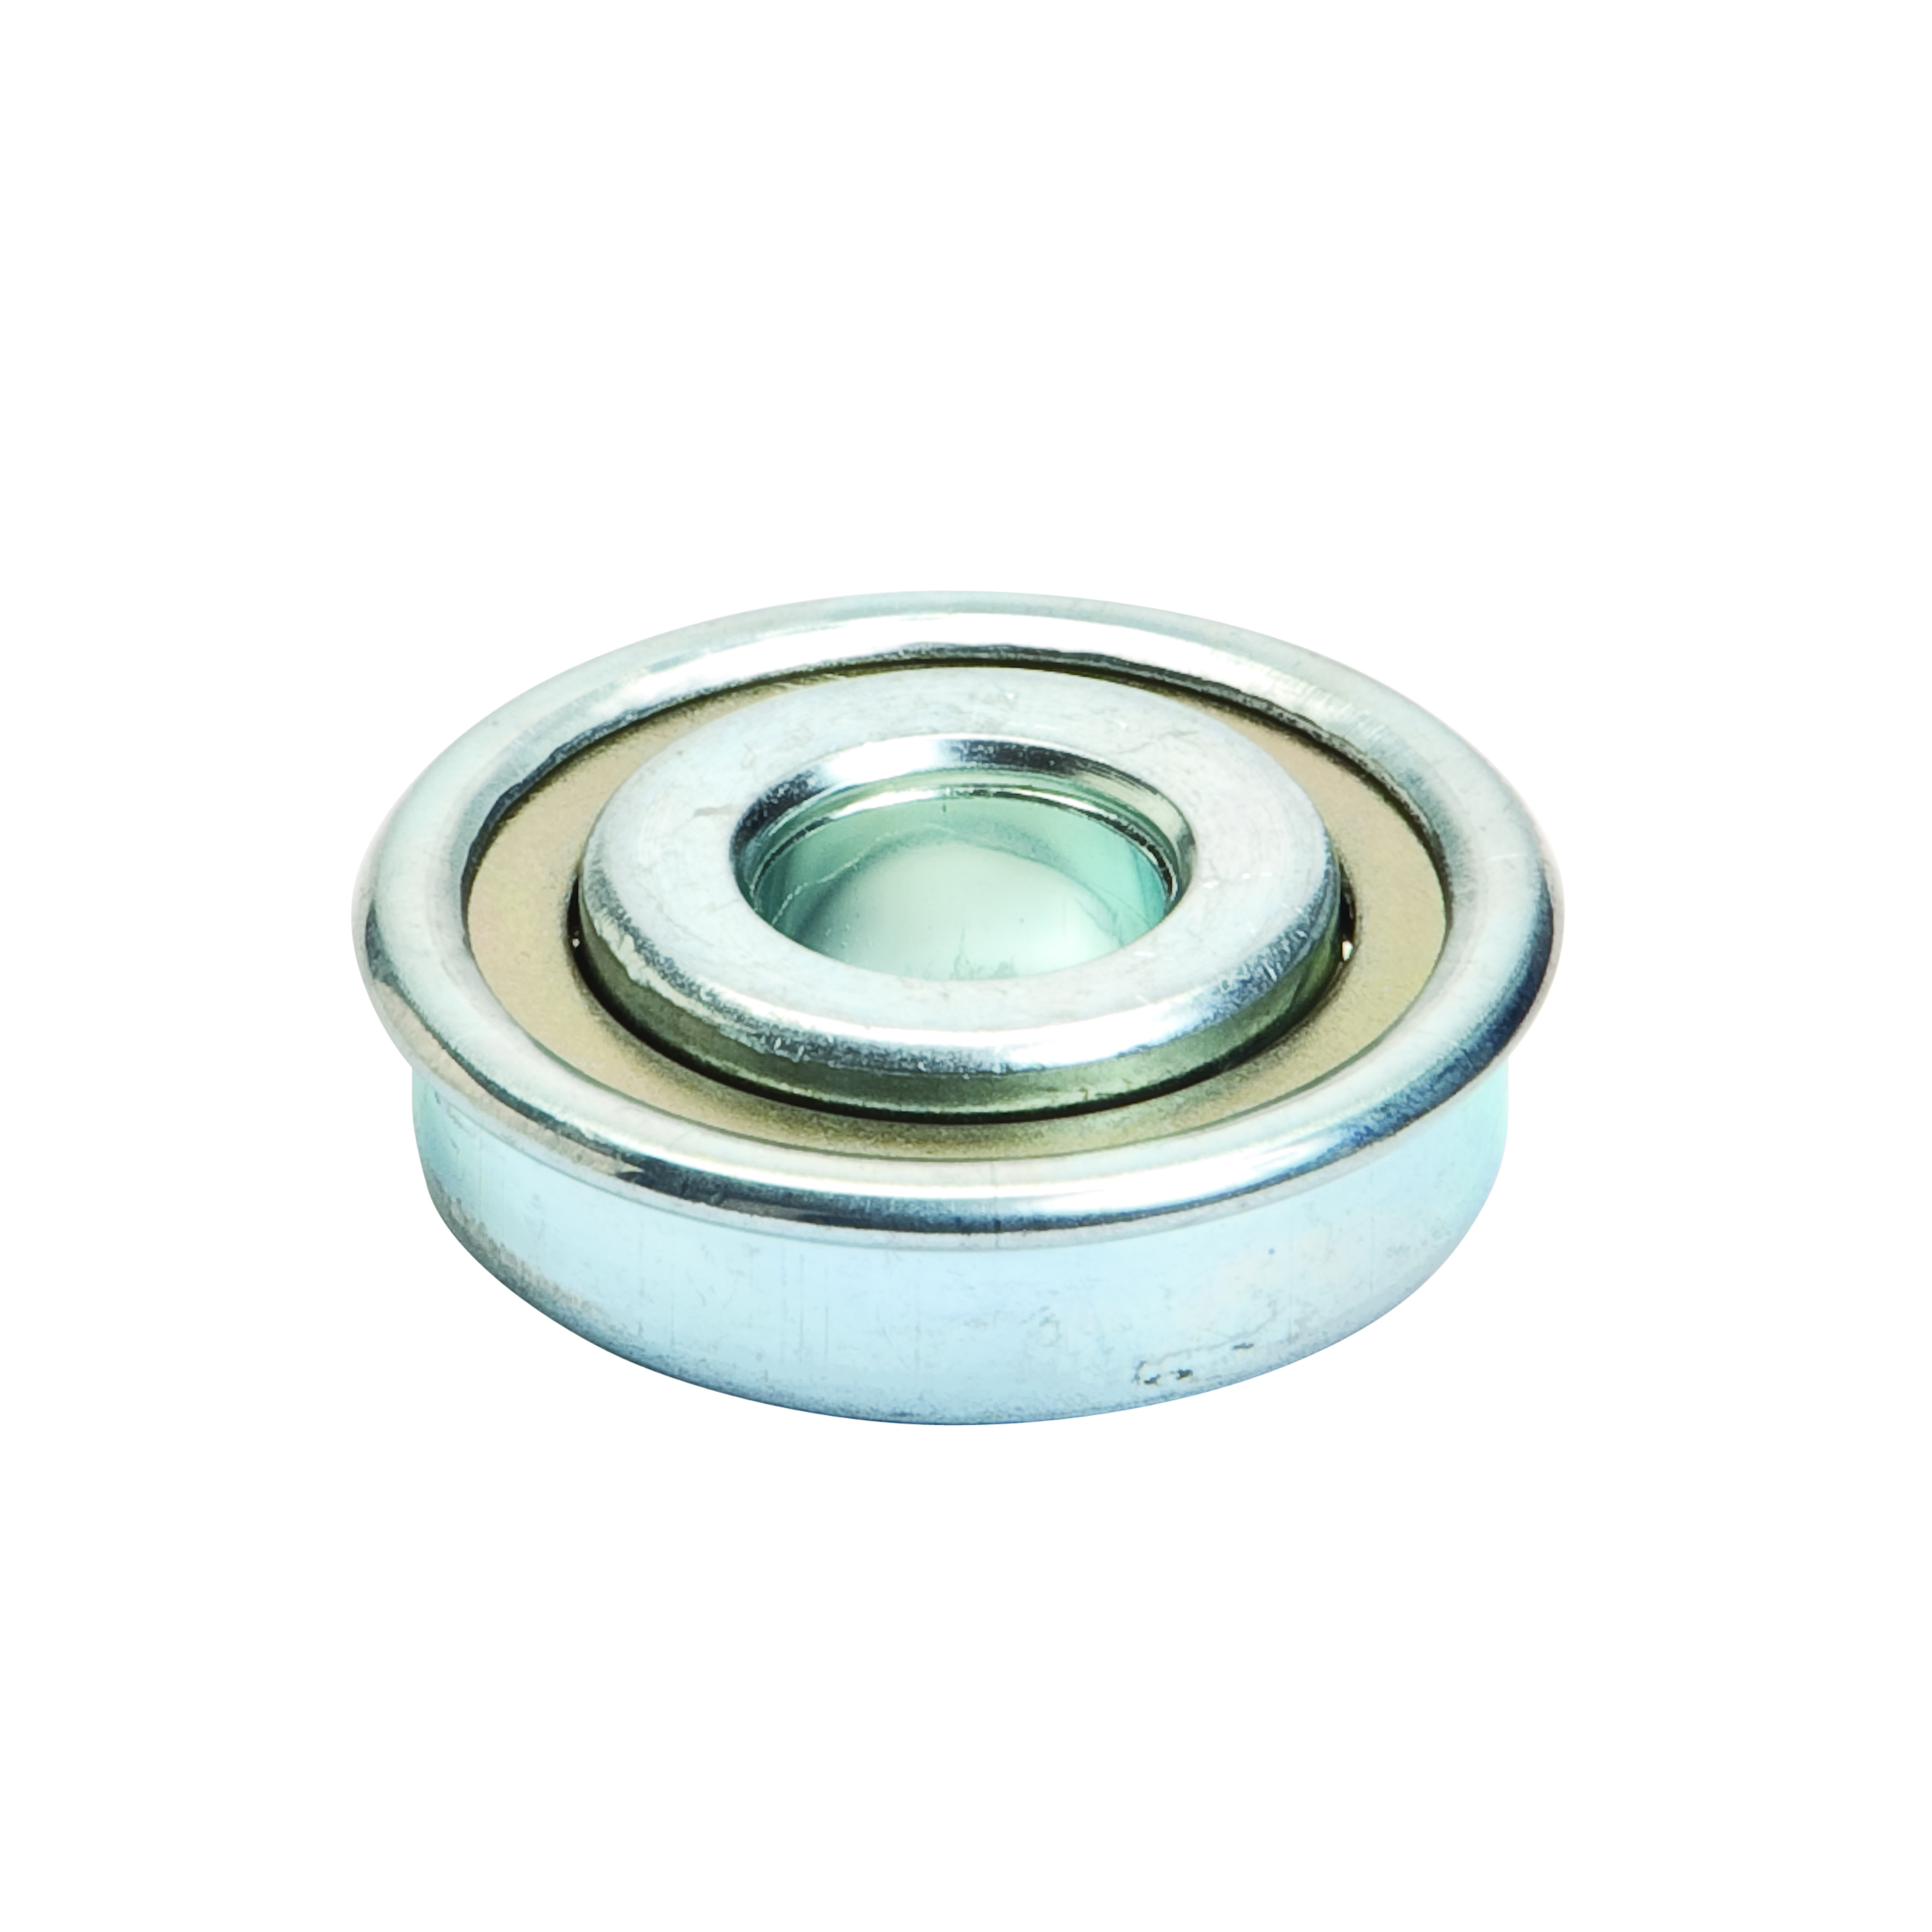 Flanged Wheel Bearing Size 1 3/8